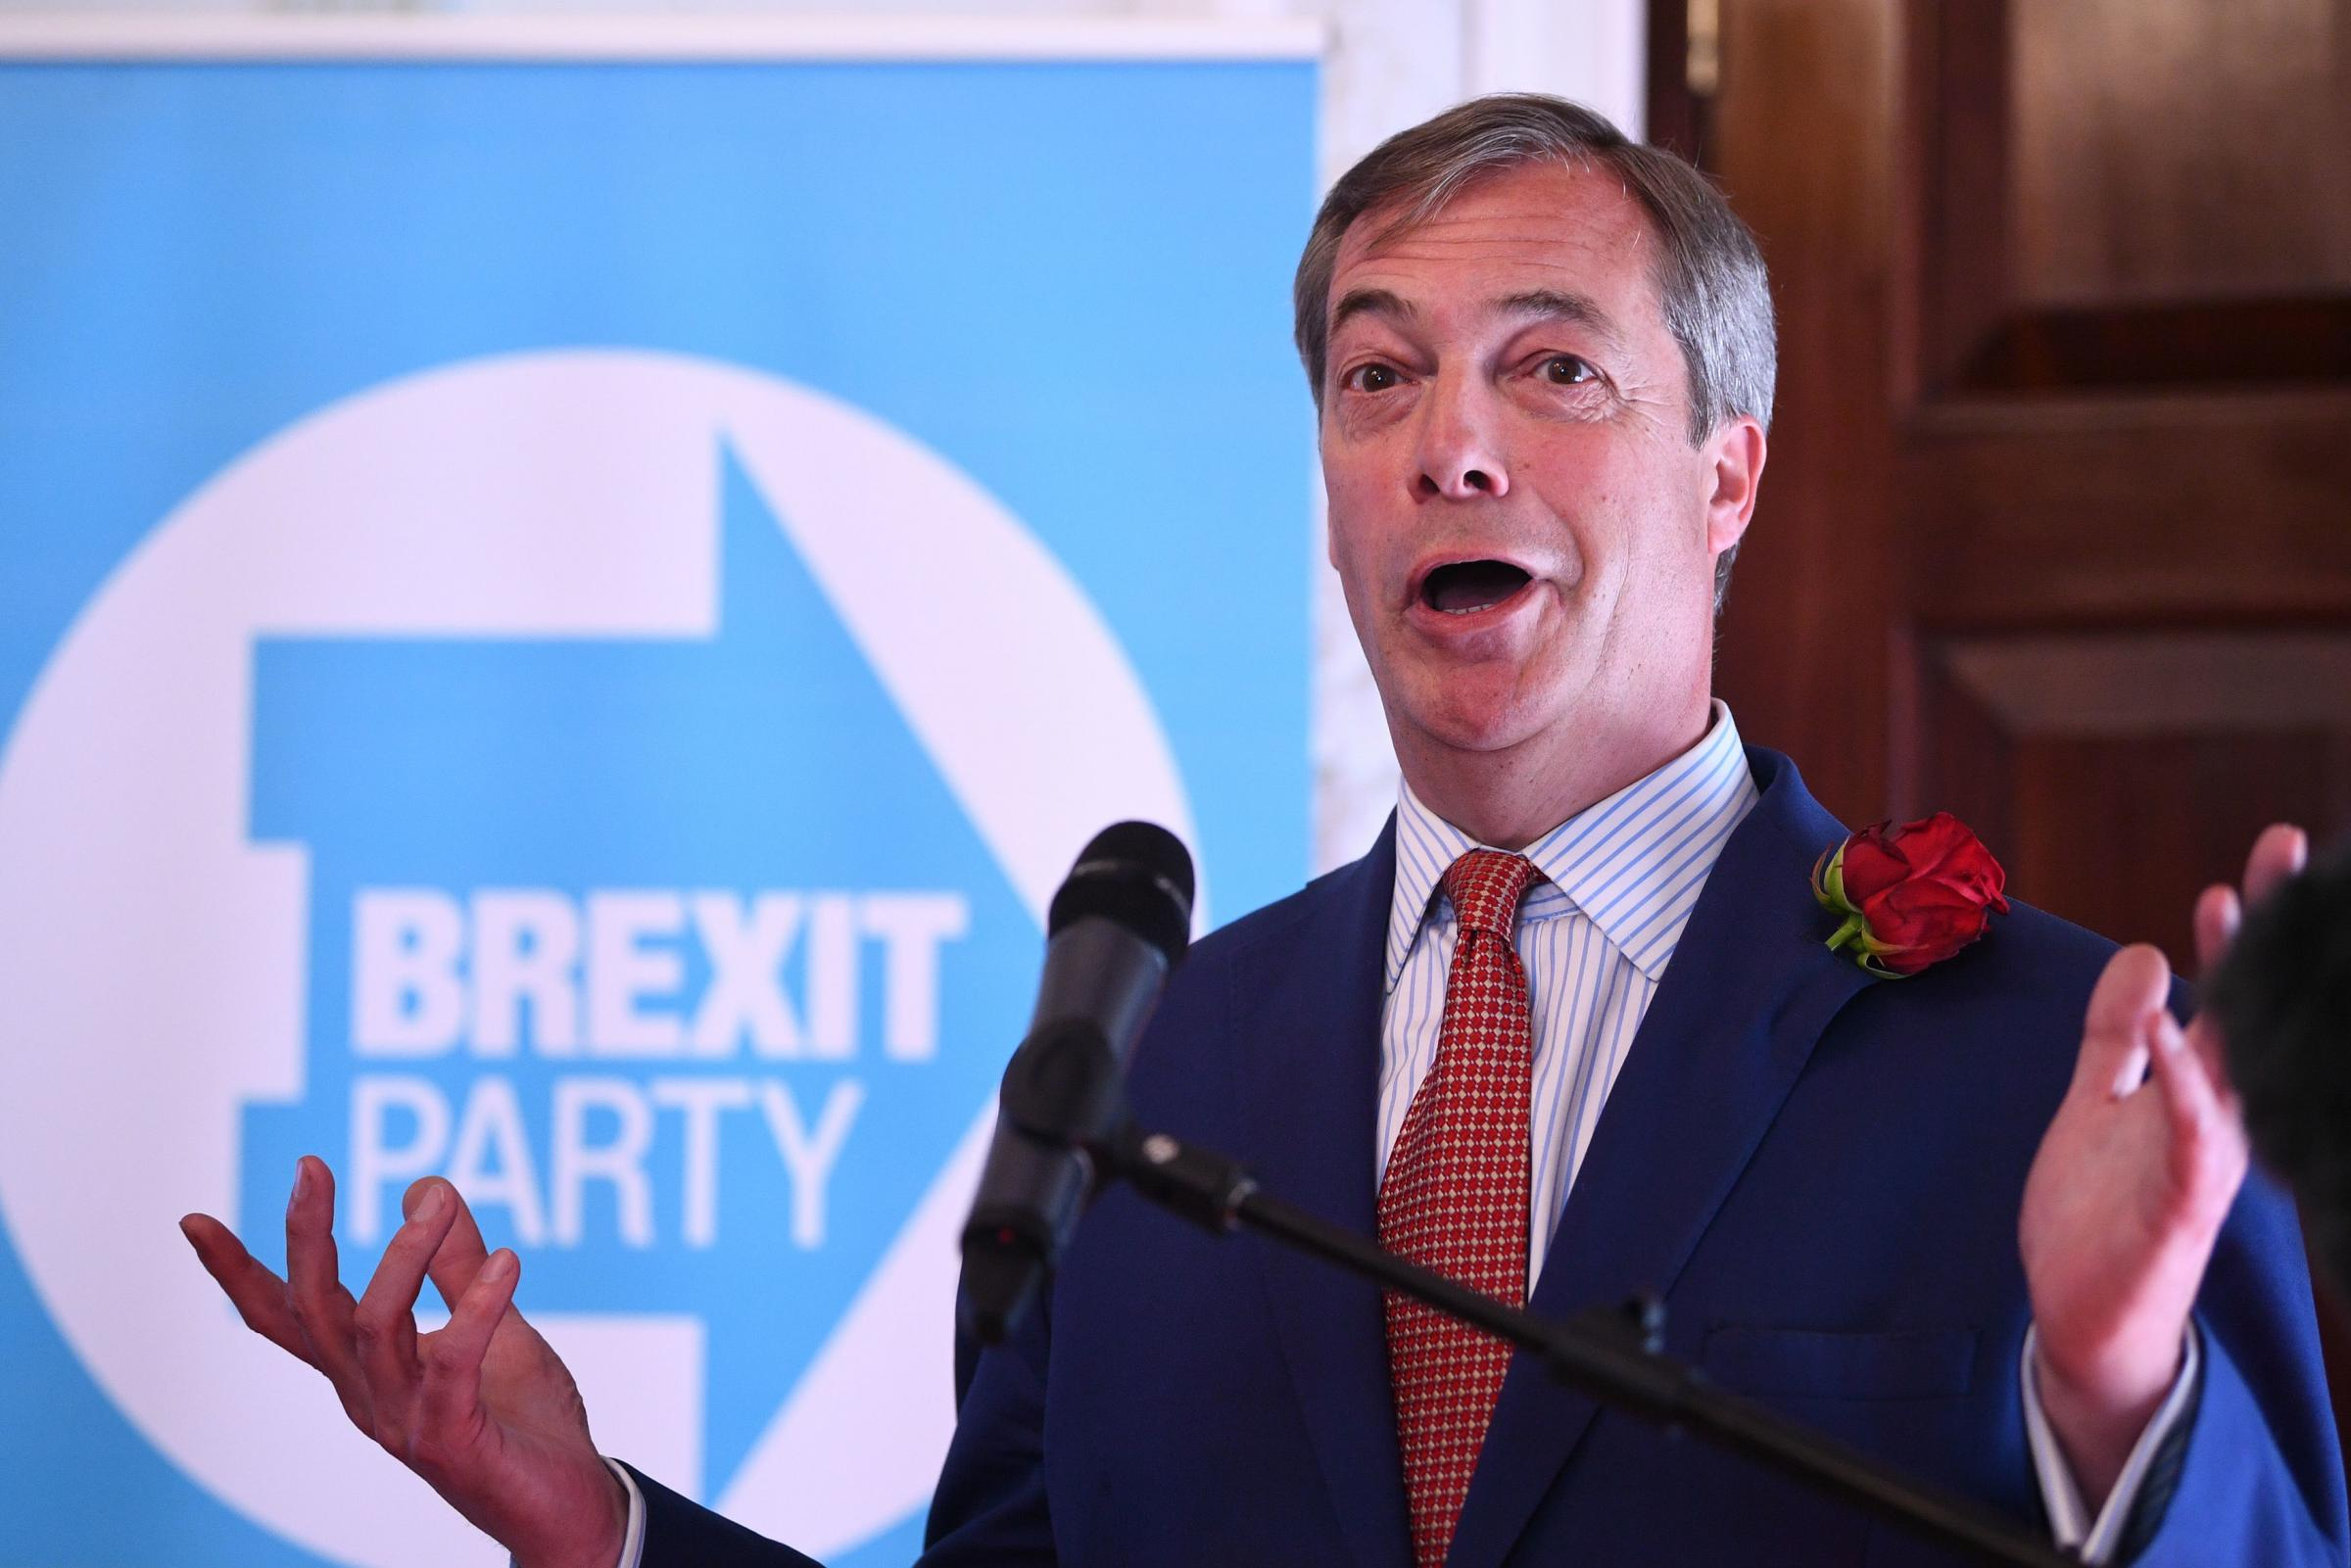 Nigel Farage moaned about the lack of mainstream airtime for his party